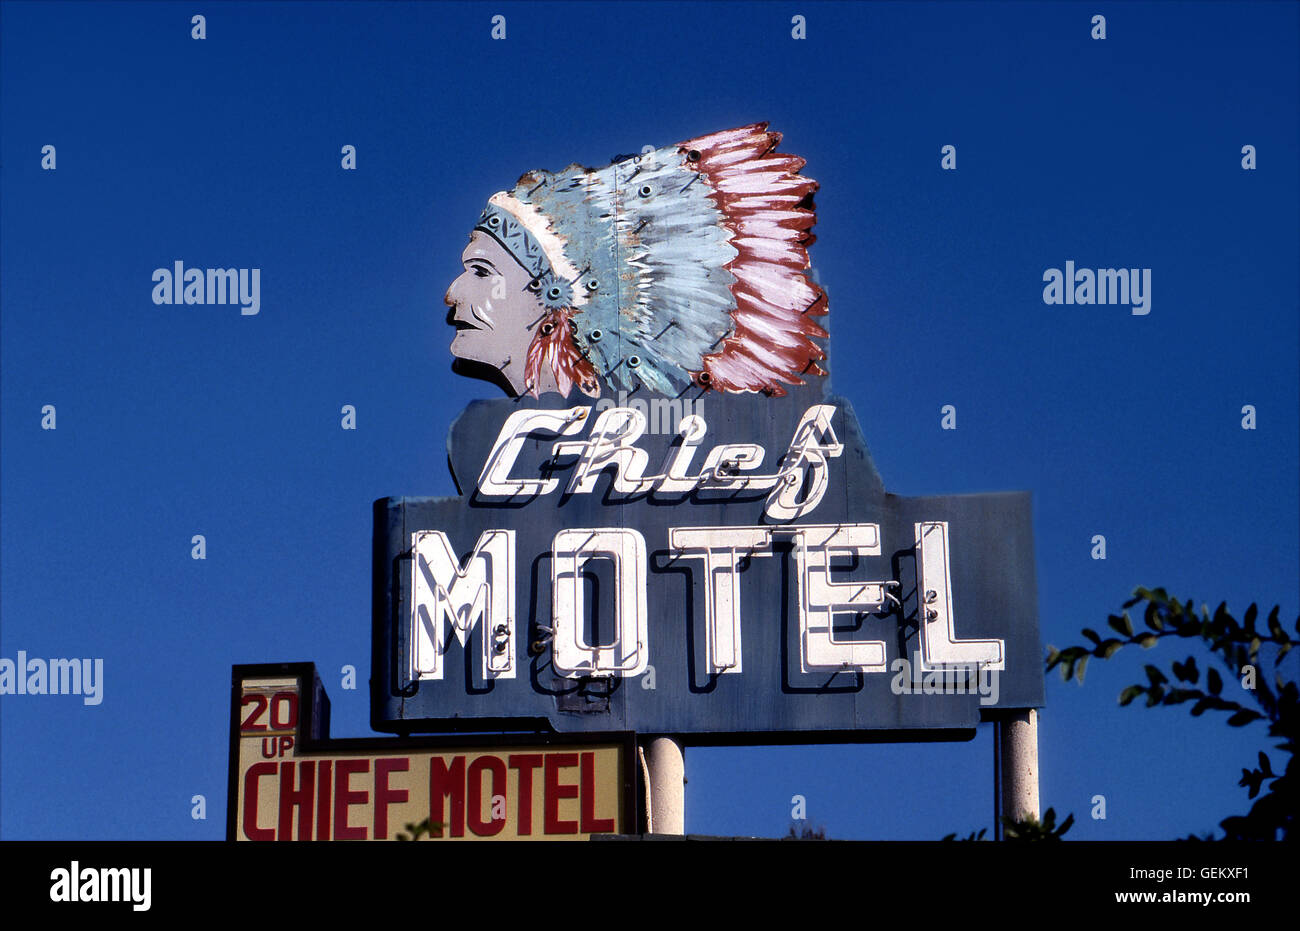 Motel Sign with Native American imagery in Long Beach, CA - Stock Image